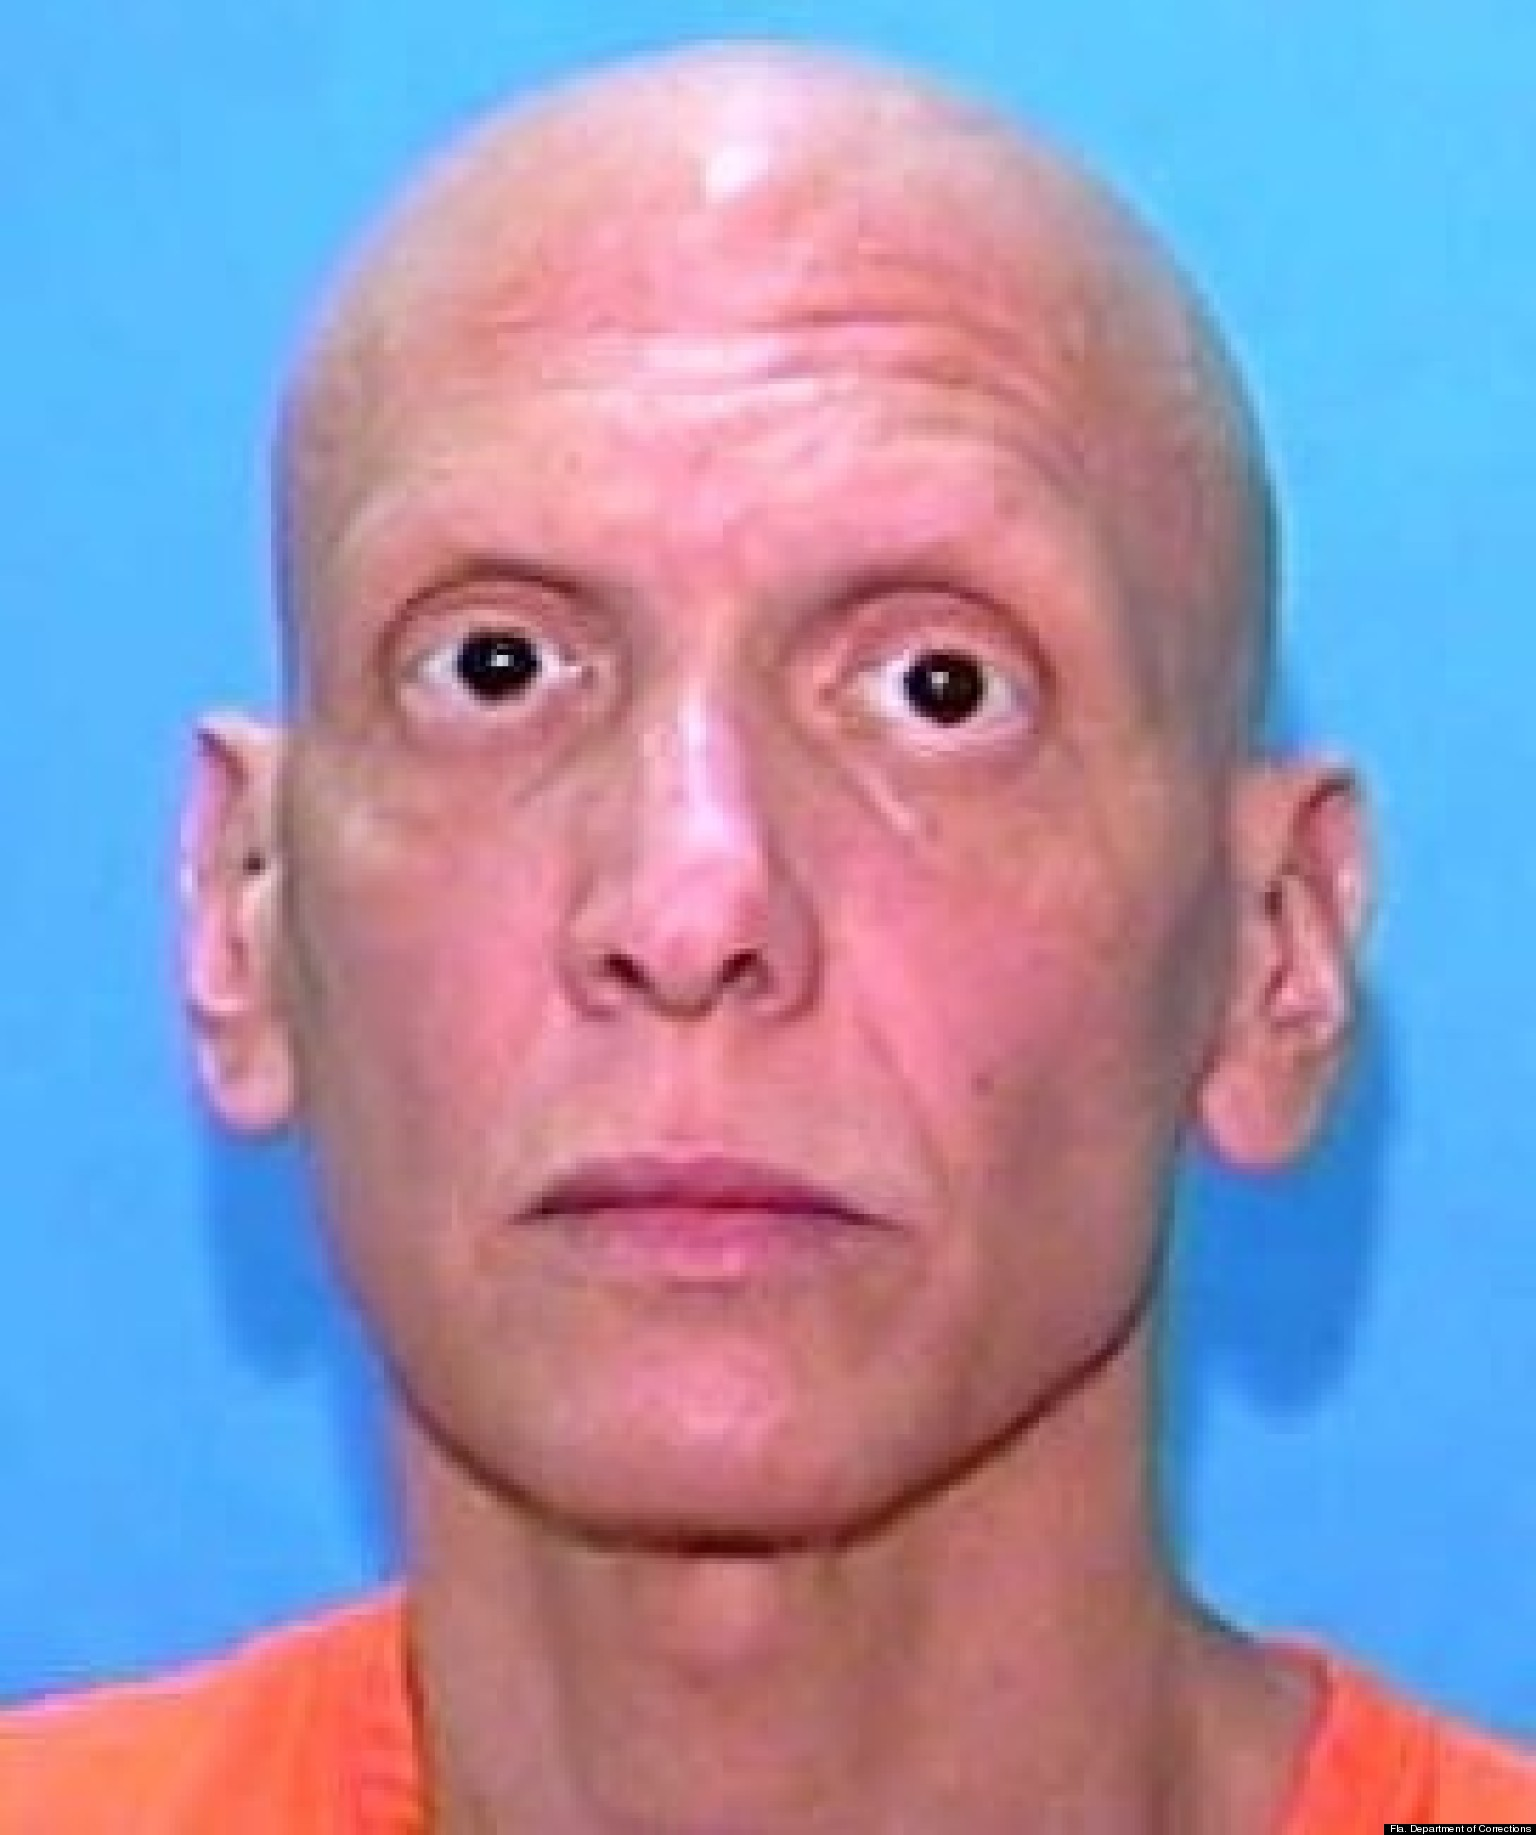 Convicted Florida Killer Asks For Stay Of Execution 363394561 additionally Susan And Shane Hamwi Murders 1111983 Fort Lauderdale Fl John Purvis Was Wrongfully Convicted Paul Hamwi Hired 2 Men To Kill His Ex Wife And Child So He Would Not Have To Pay Alimony Or Child Sup likewise Victim John Henry Pollock additionally Aileen Wuornos Crime Scene Photos moreover Execution Witnesses Have Mixed Views After Death Of T a Bay Serial Killer Oscar Ray Bolin. on oscar bolin victims